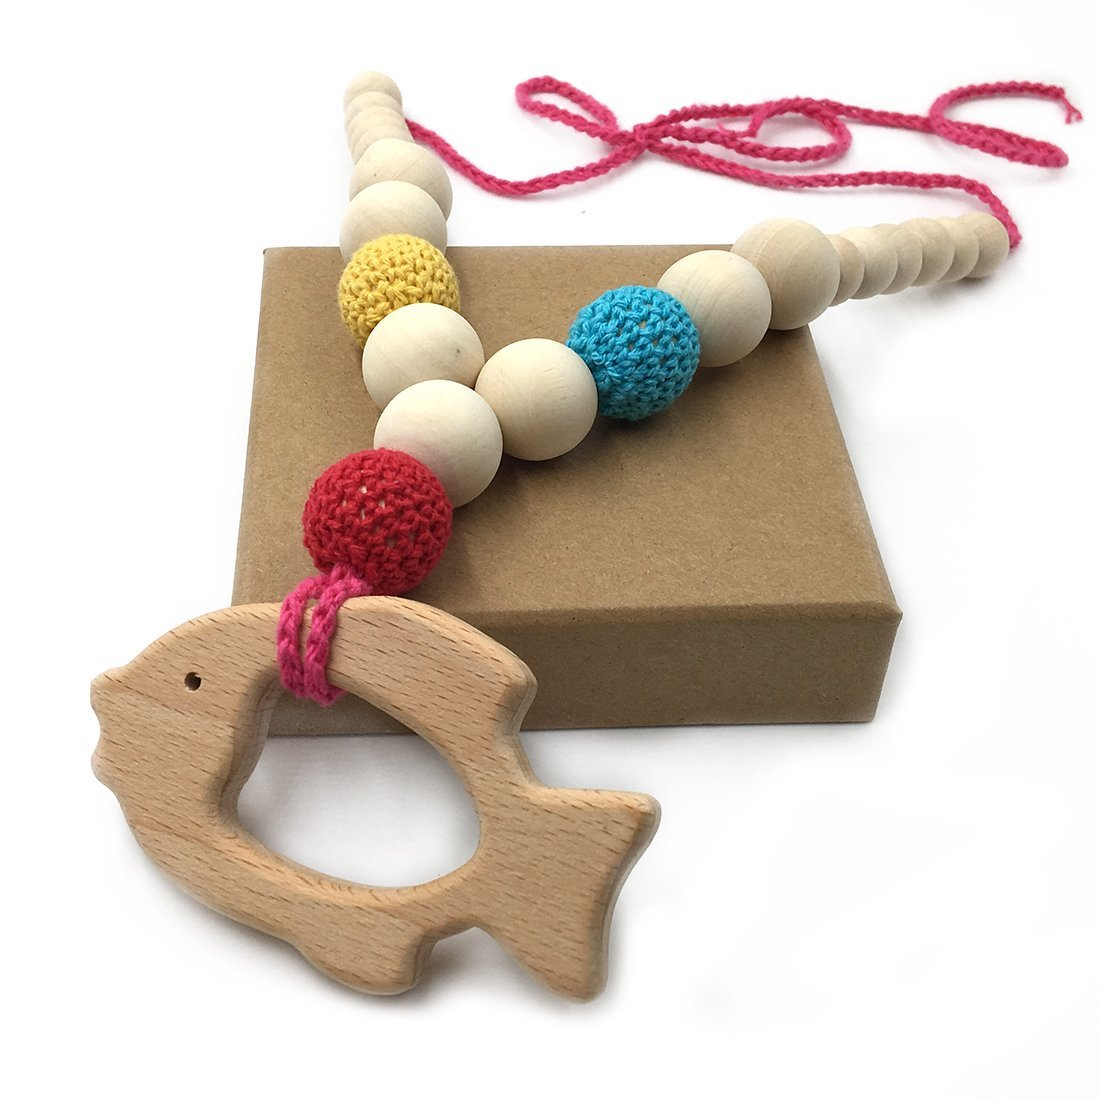 Amyster Crochet Beads Baby Teether Necklace Beads Safe Chunky Teething Necklace Wooden goldfish Wooden Crochet Nursing Teether Baby Toy (color 4)